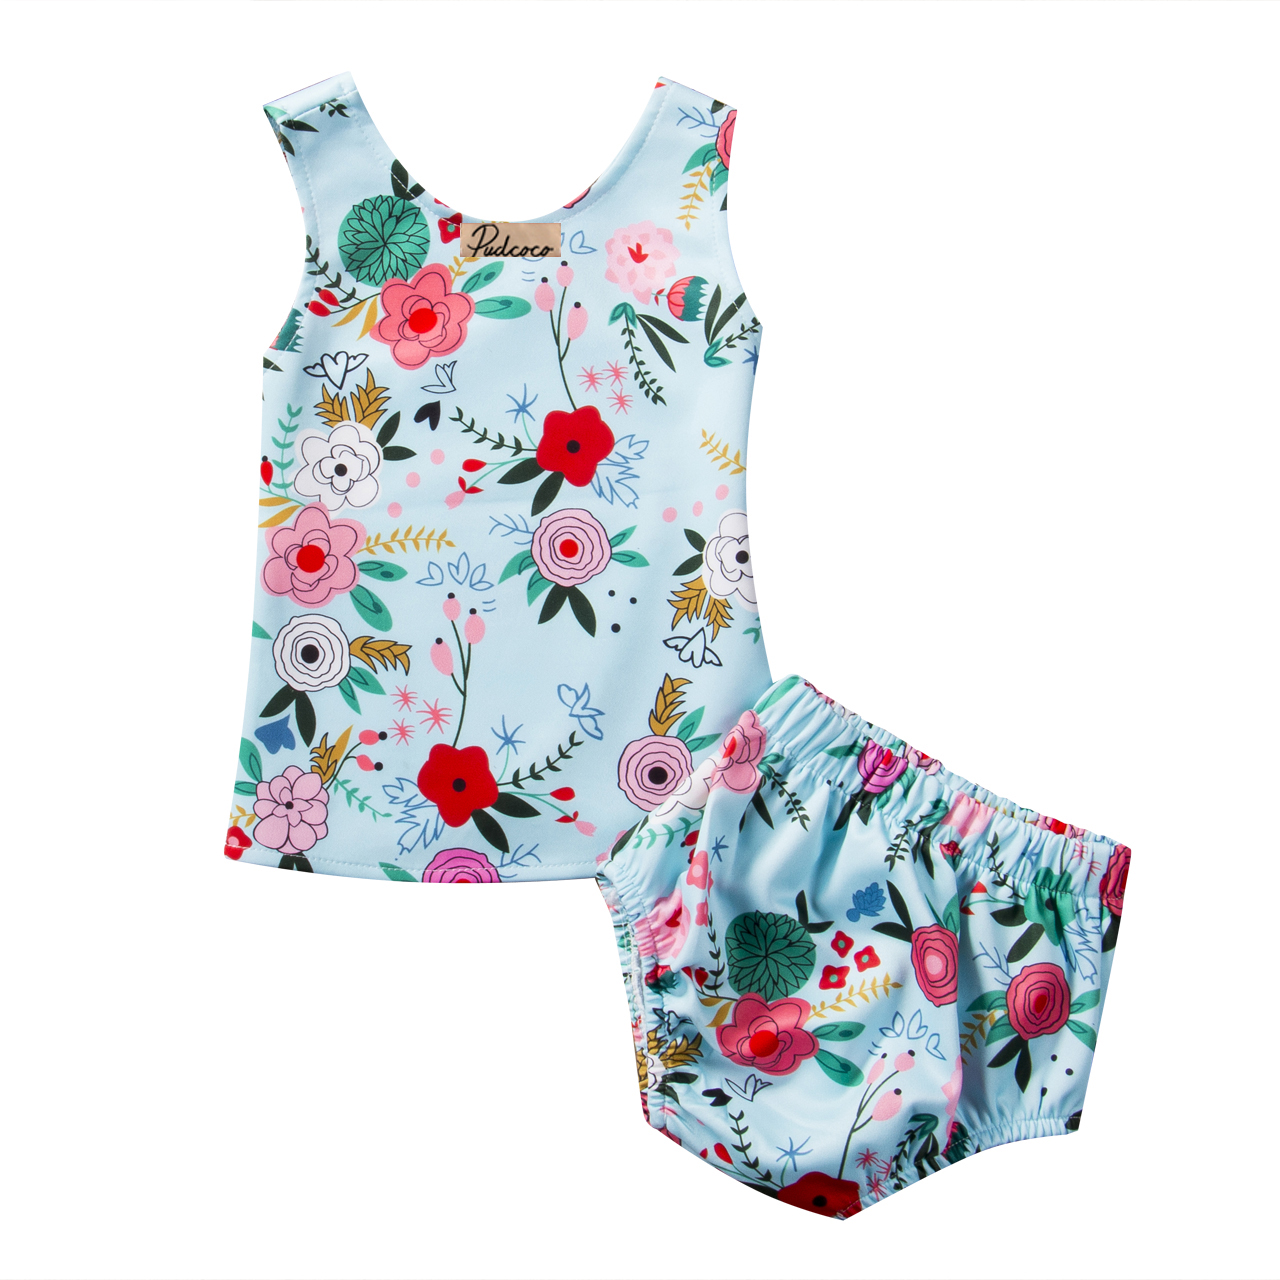 Pudcoco Summer Cotton Floral Newborn Baby Girls Clothes O-Neck Sleeveless Tops Shorts Pants Outfits Set 0-24M pudcoco newborn infant baby girls clothes short sleeve floral romper headband summer cute cotton one piece clothes